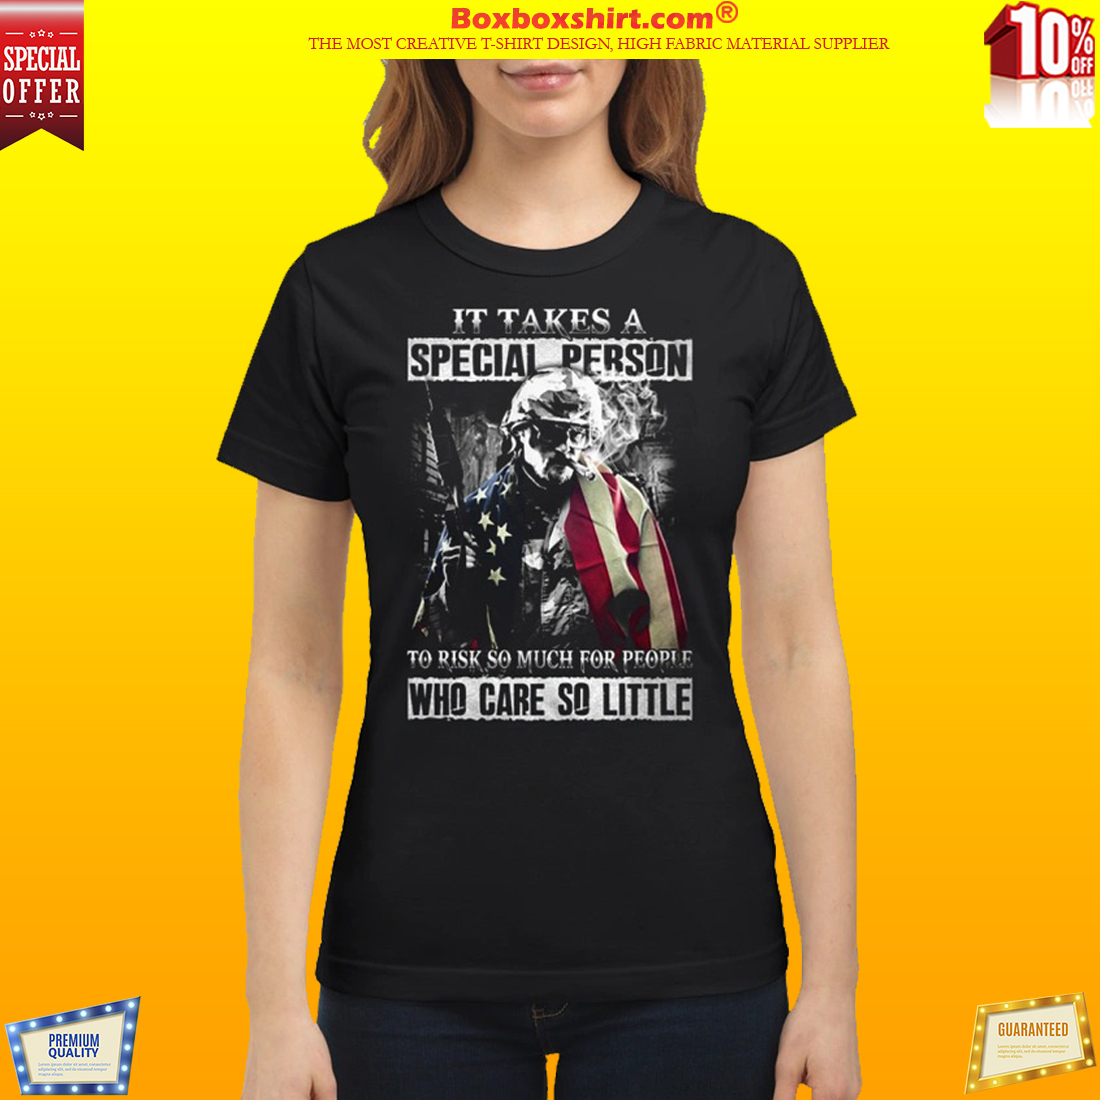 It takes a special person to risk so much for people who care so little classic shirt